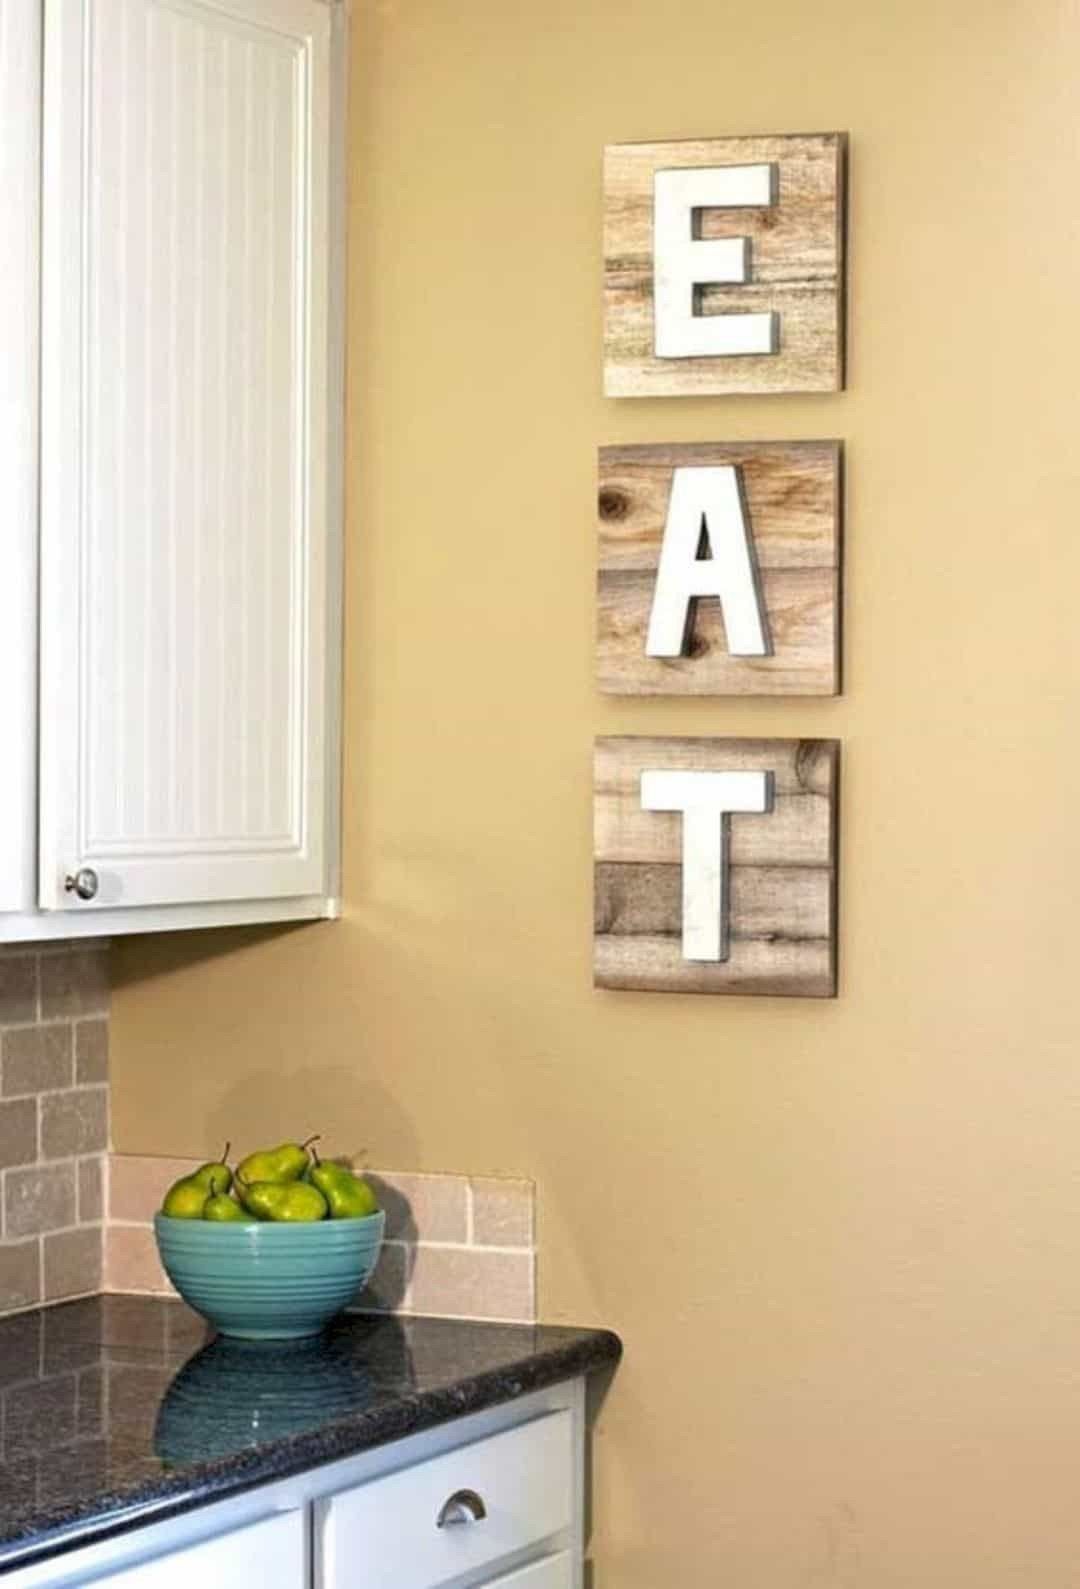 Kitchen Wall Decor Ideas Diy Inspirational 16 Stunning Kitchen Wall Decorating Ideas